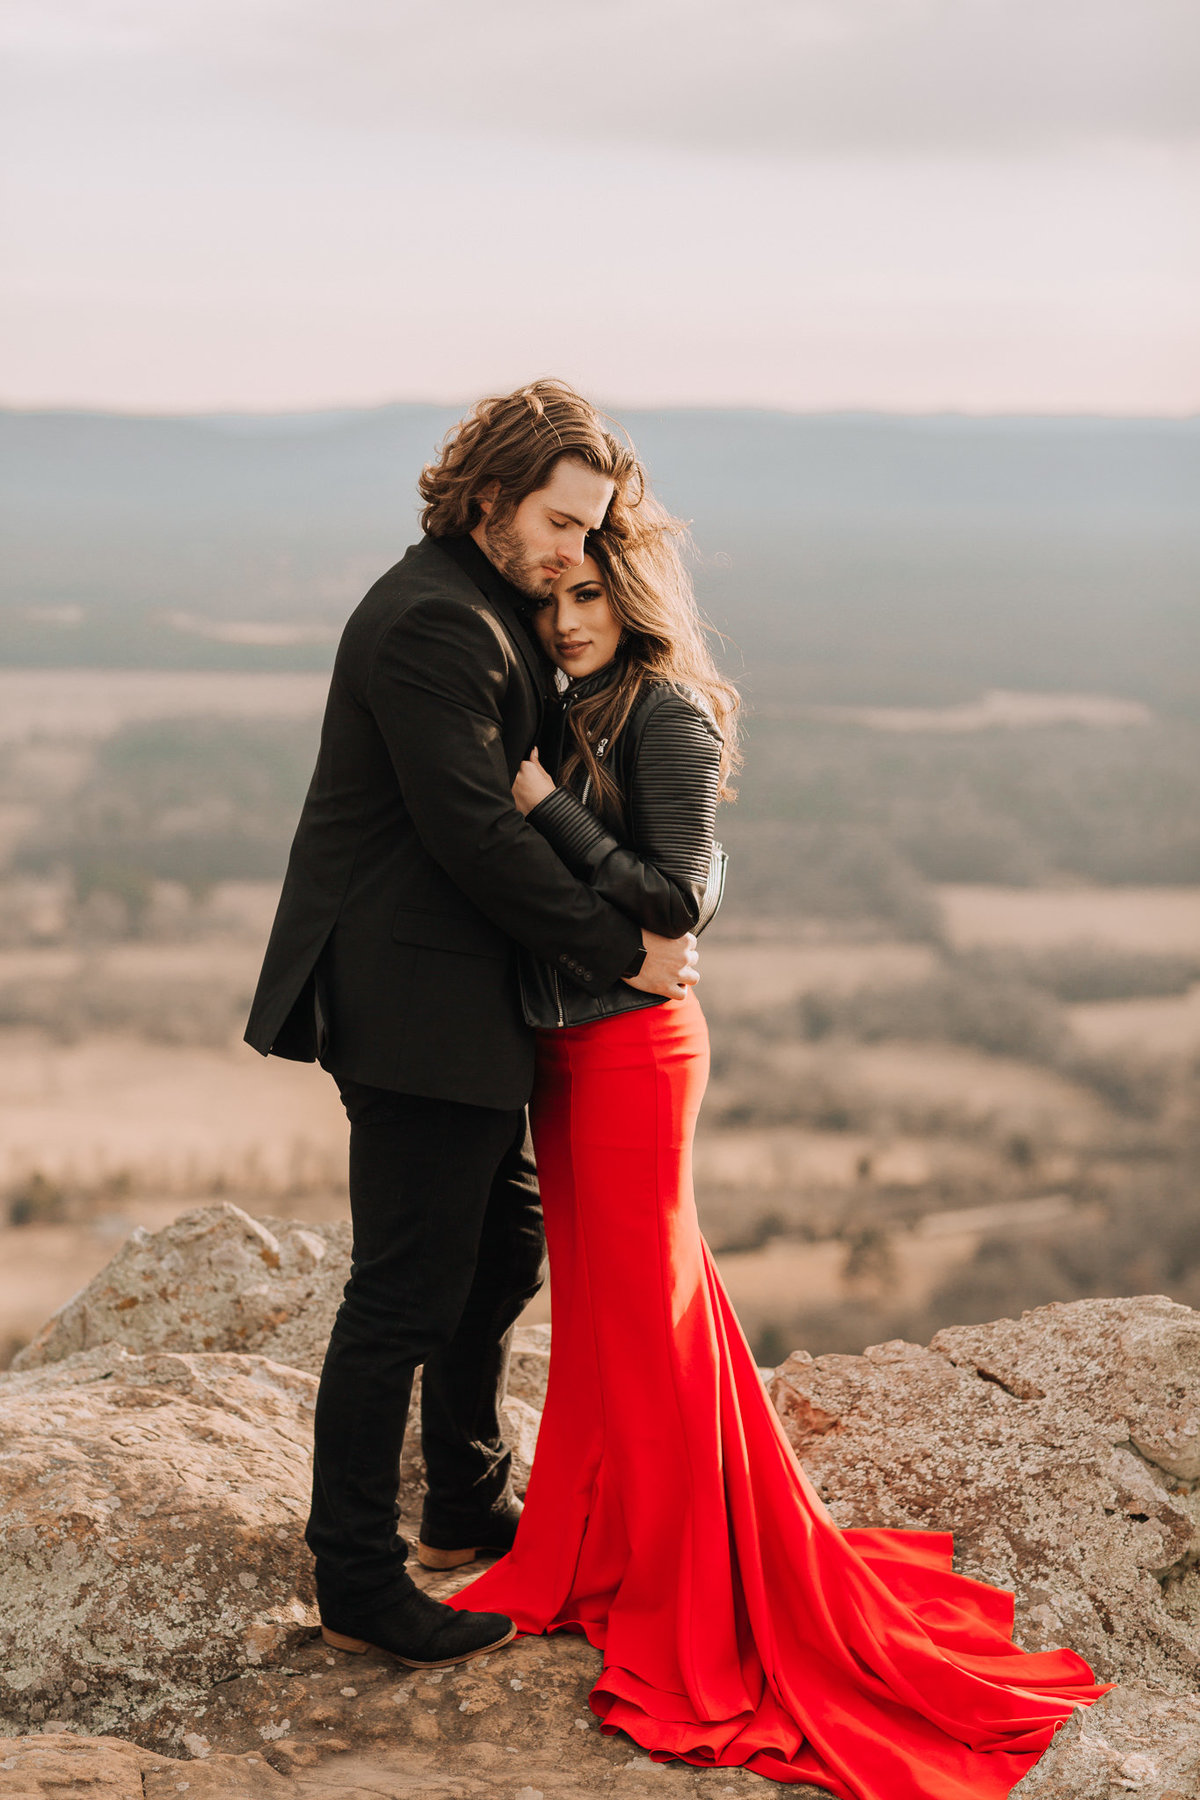 fernanda-and-great-petit-jean-state-park-arkansas-adventerous-couples-engagement-session-35